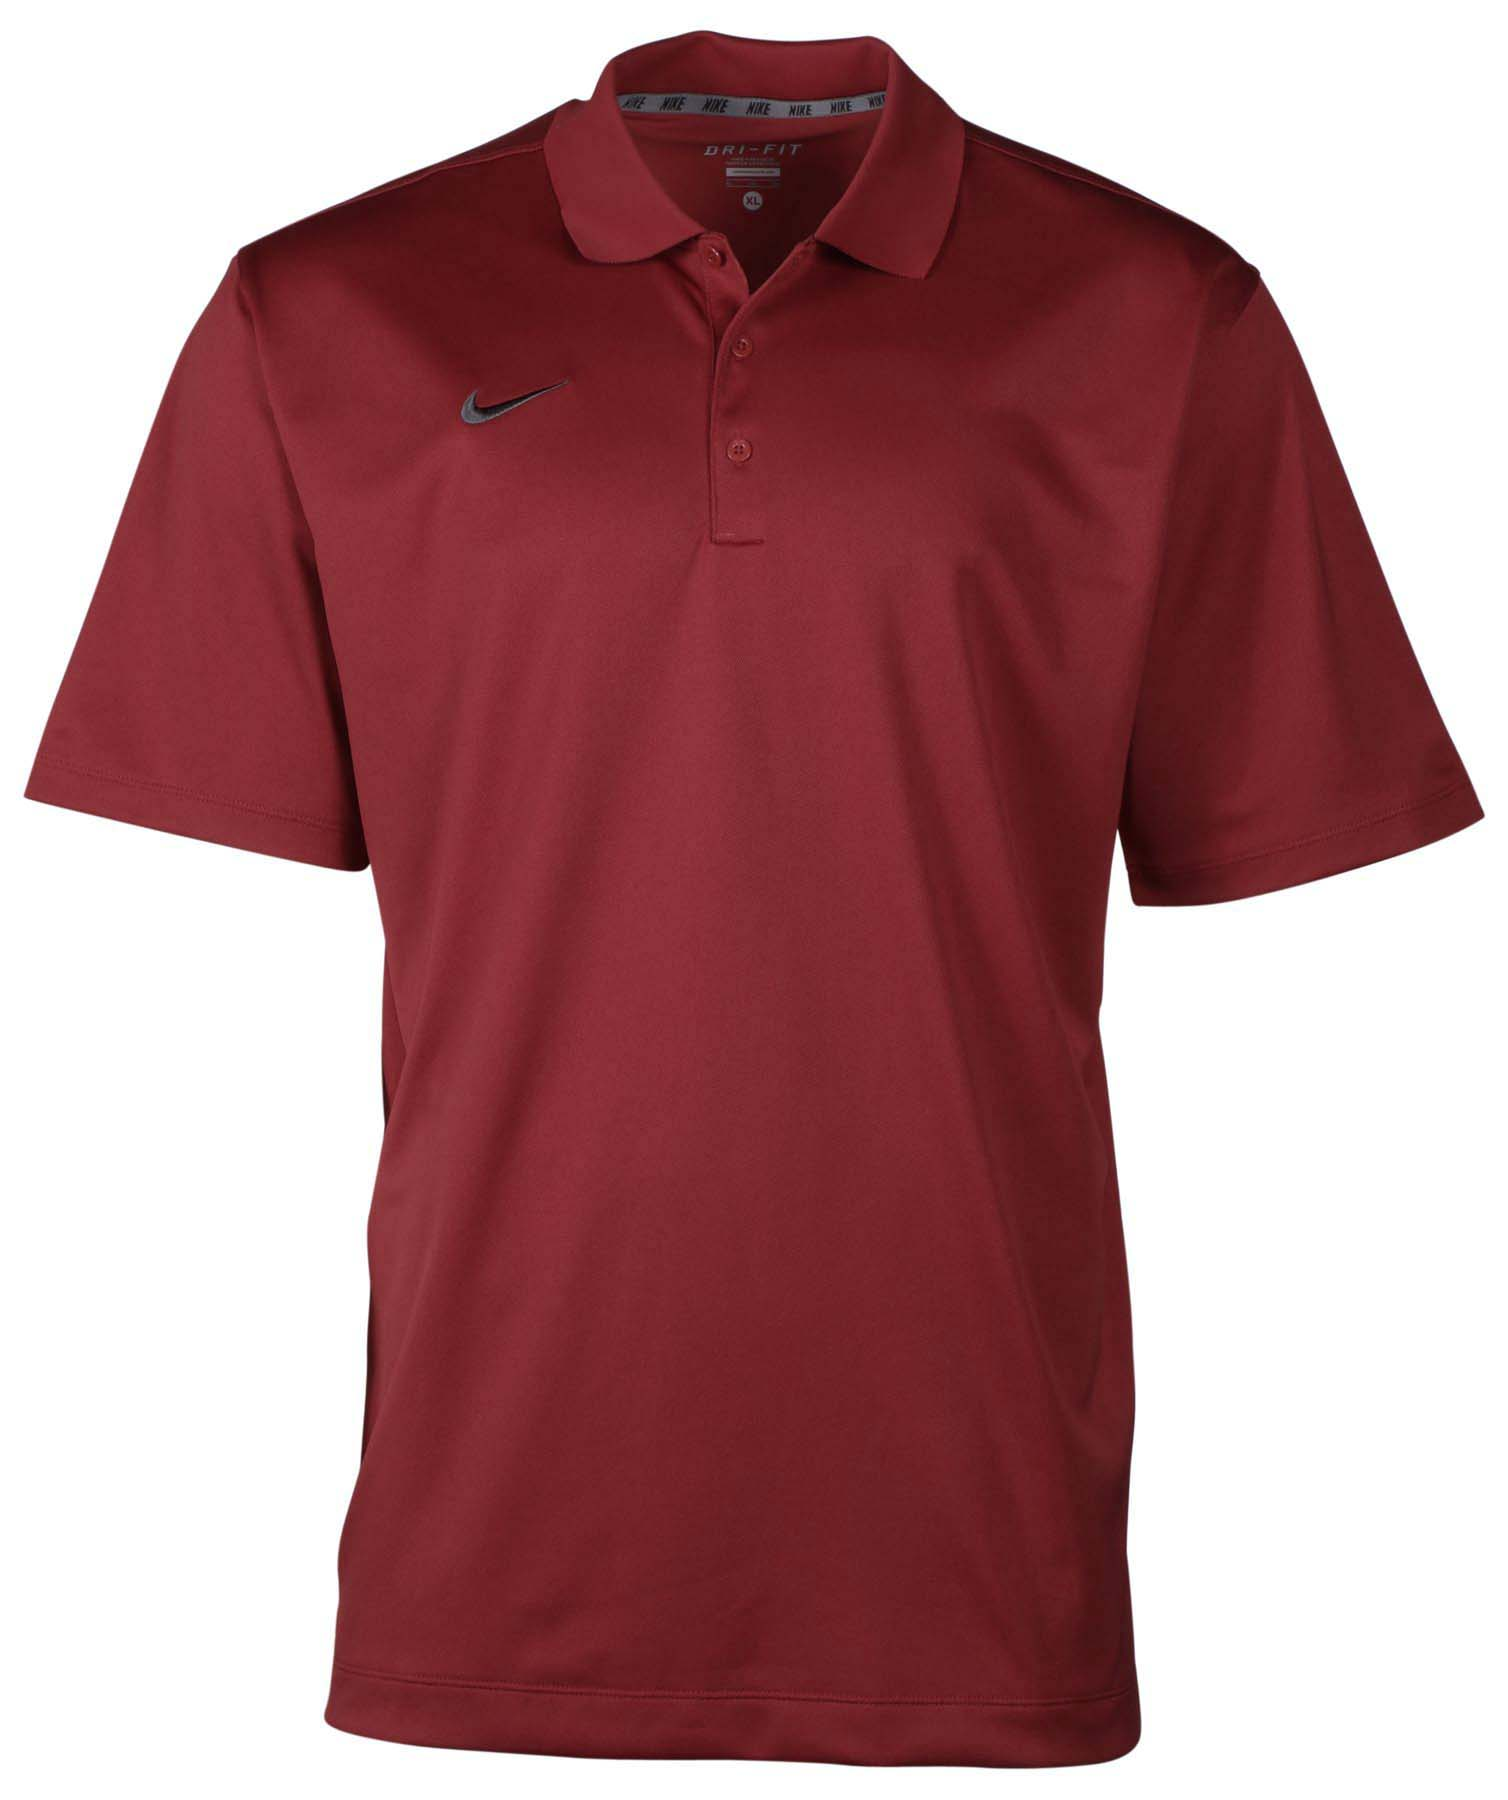 nike men 39 s dri fit football polo shirt ebay